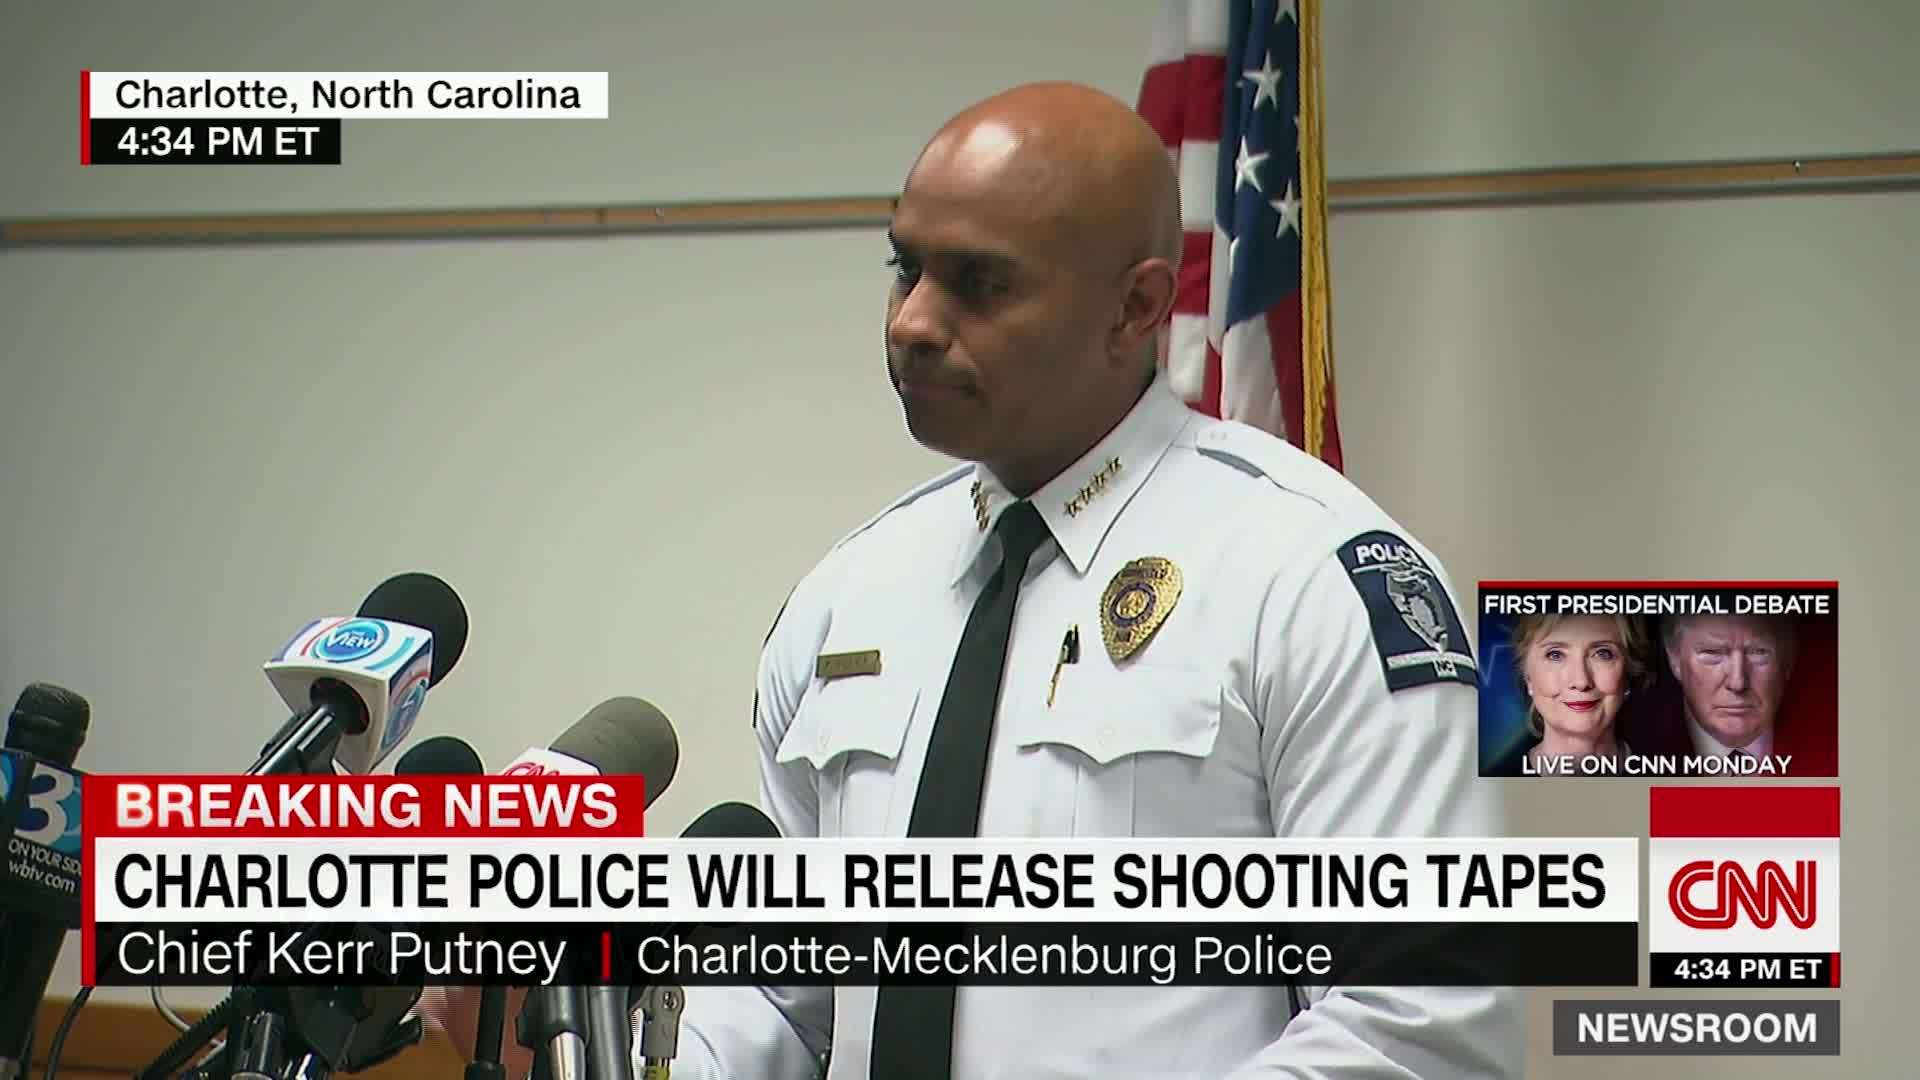 Charlotte police to release shooting videos - CNN Video